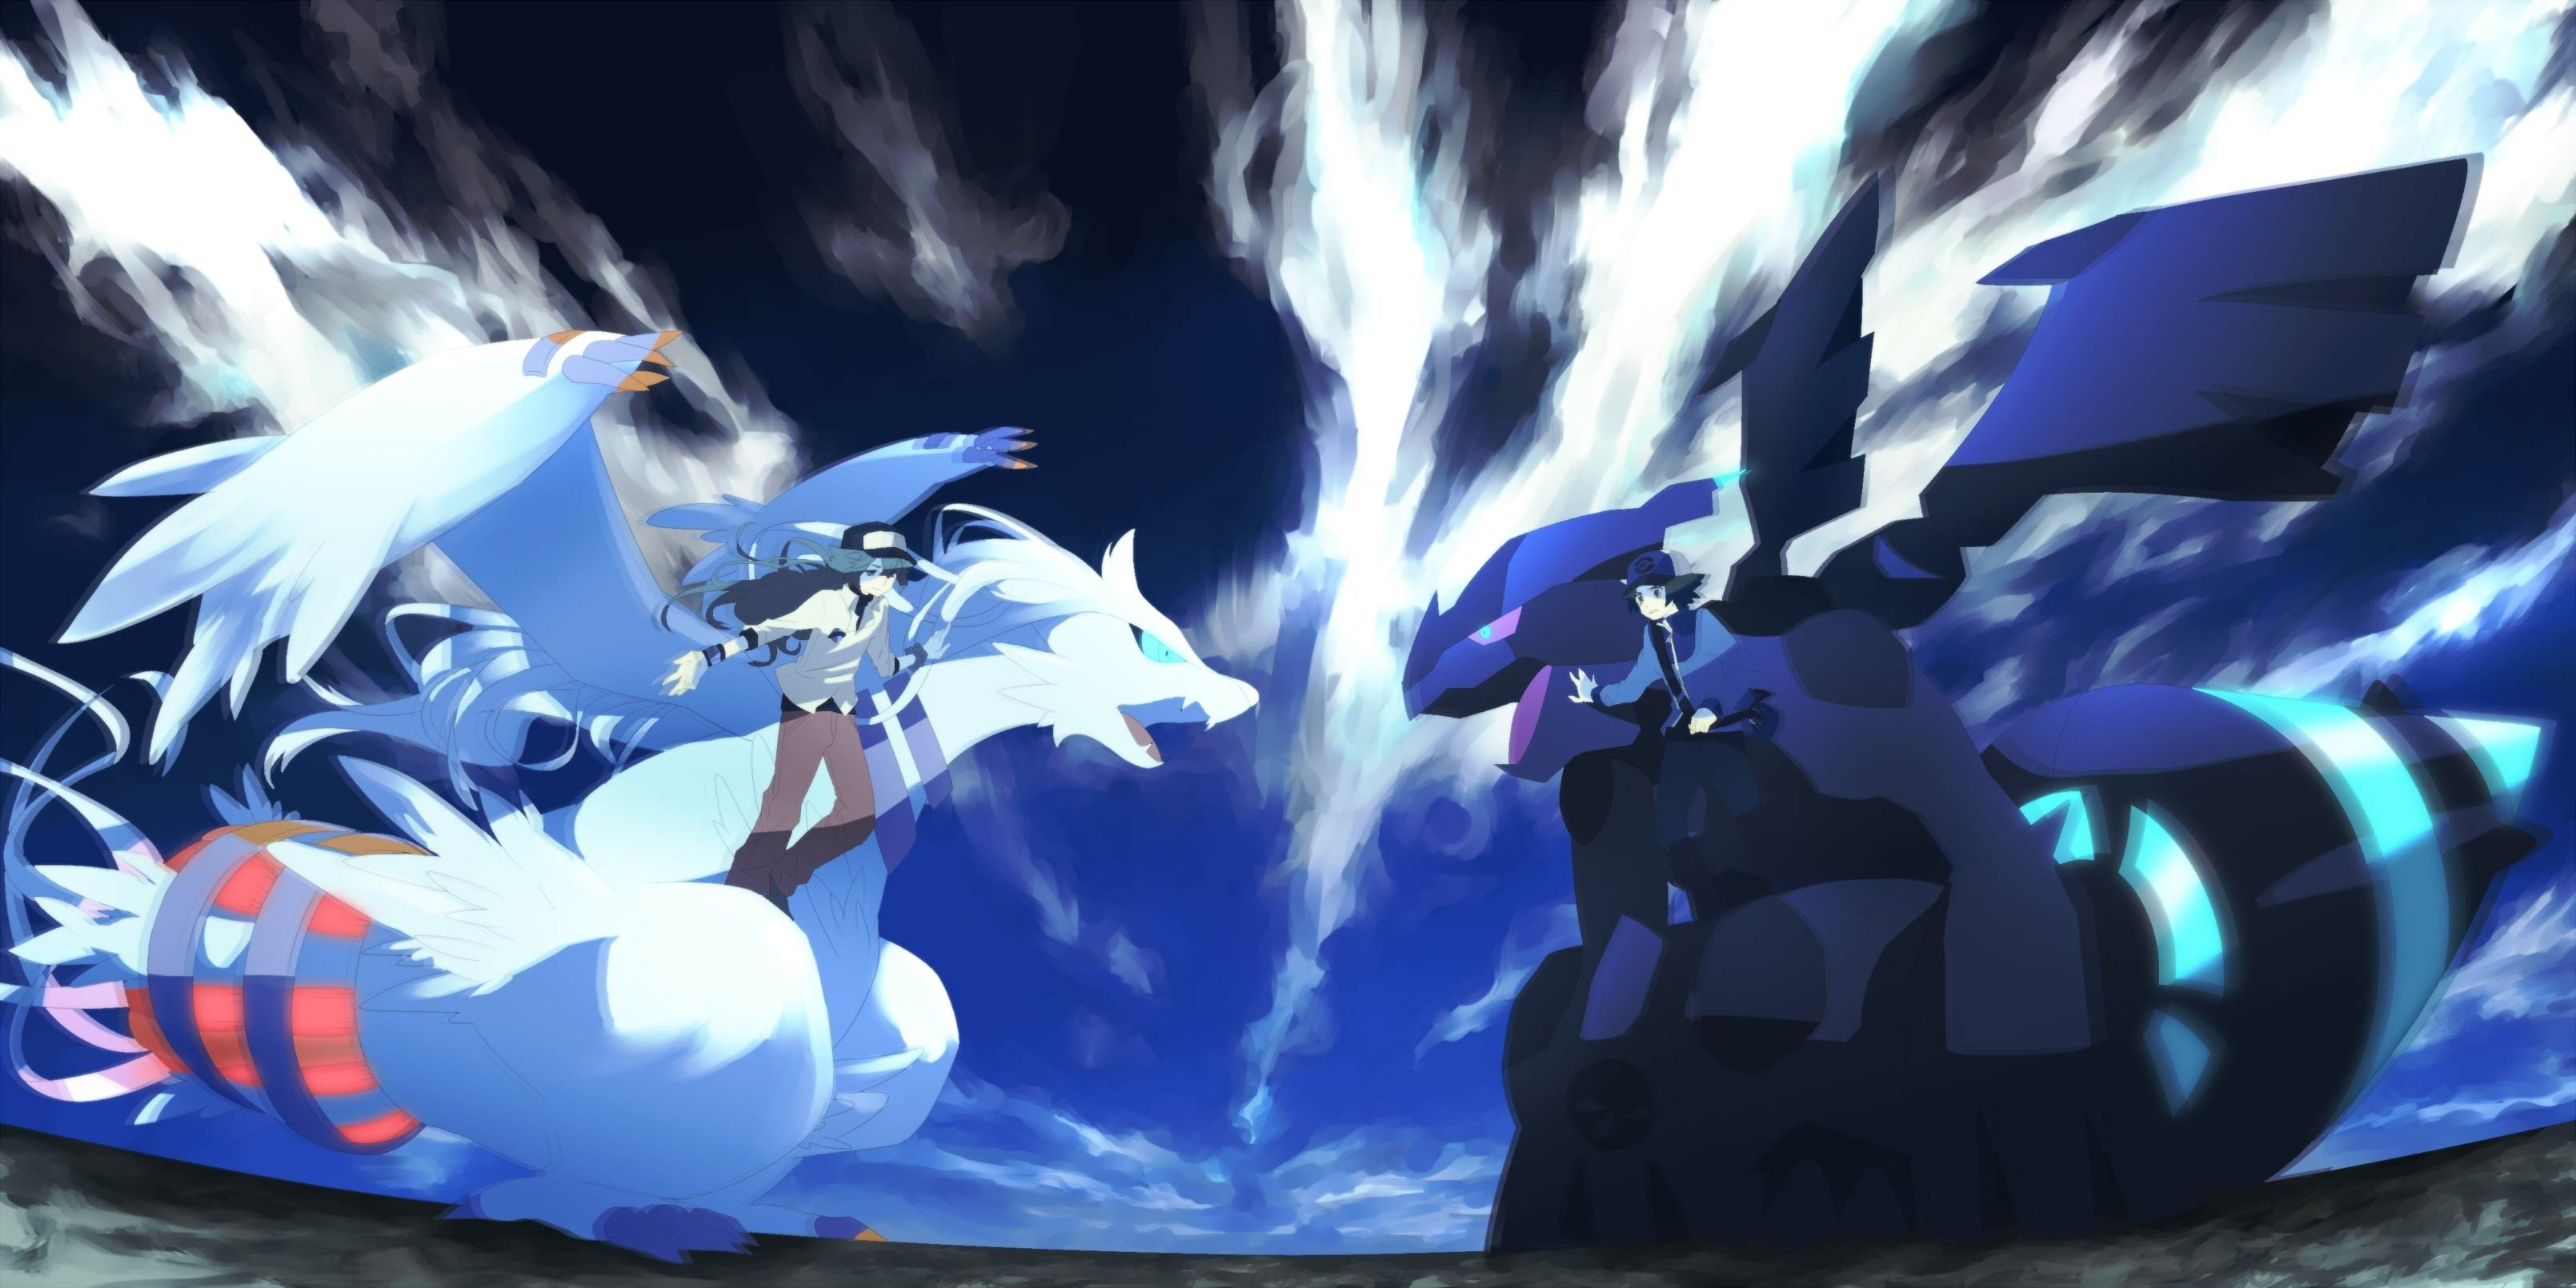 3219x1610 Zekrom vs Reshiram Wallpaper - Pokemon Wallpaper () (79259)